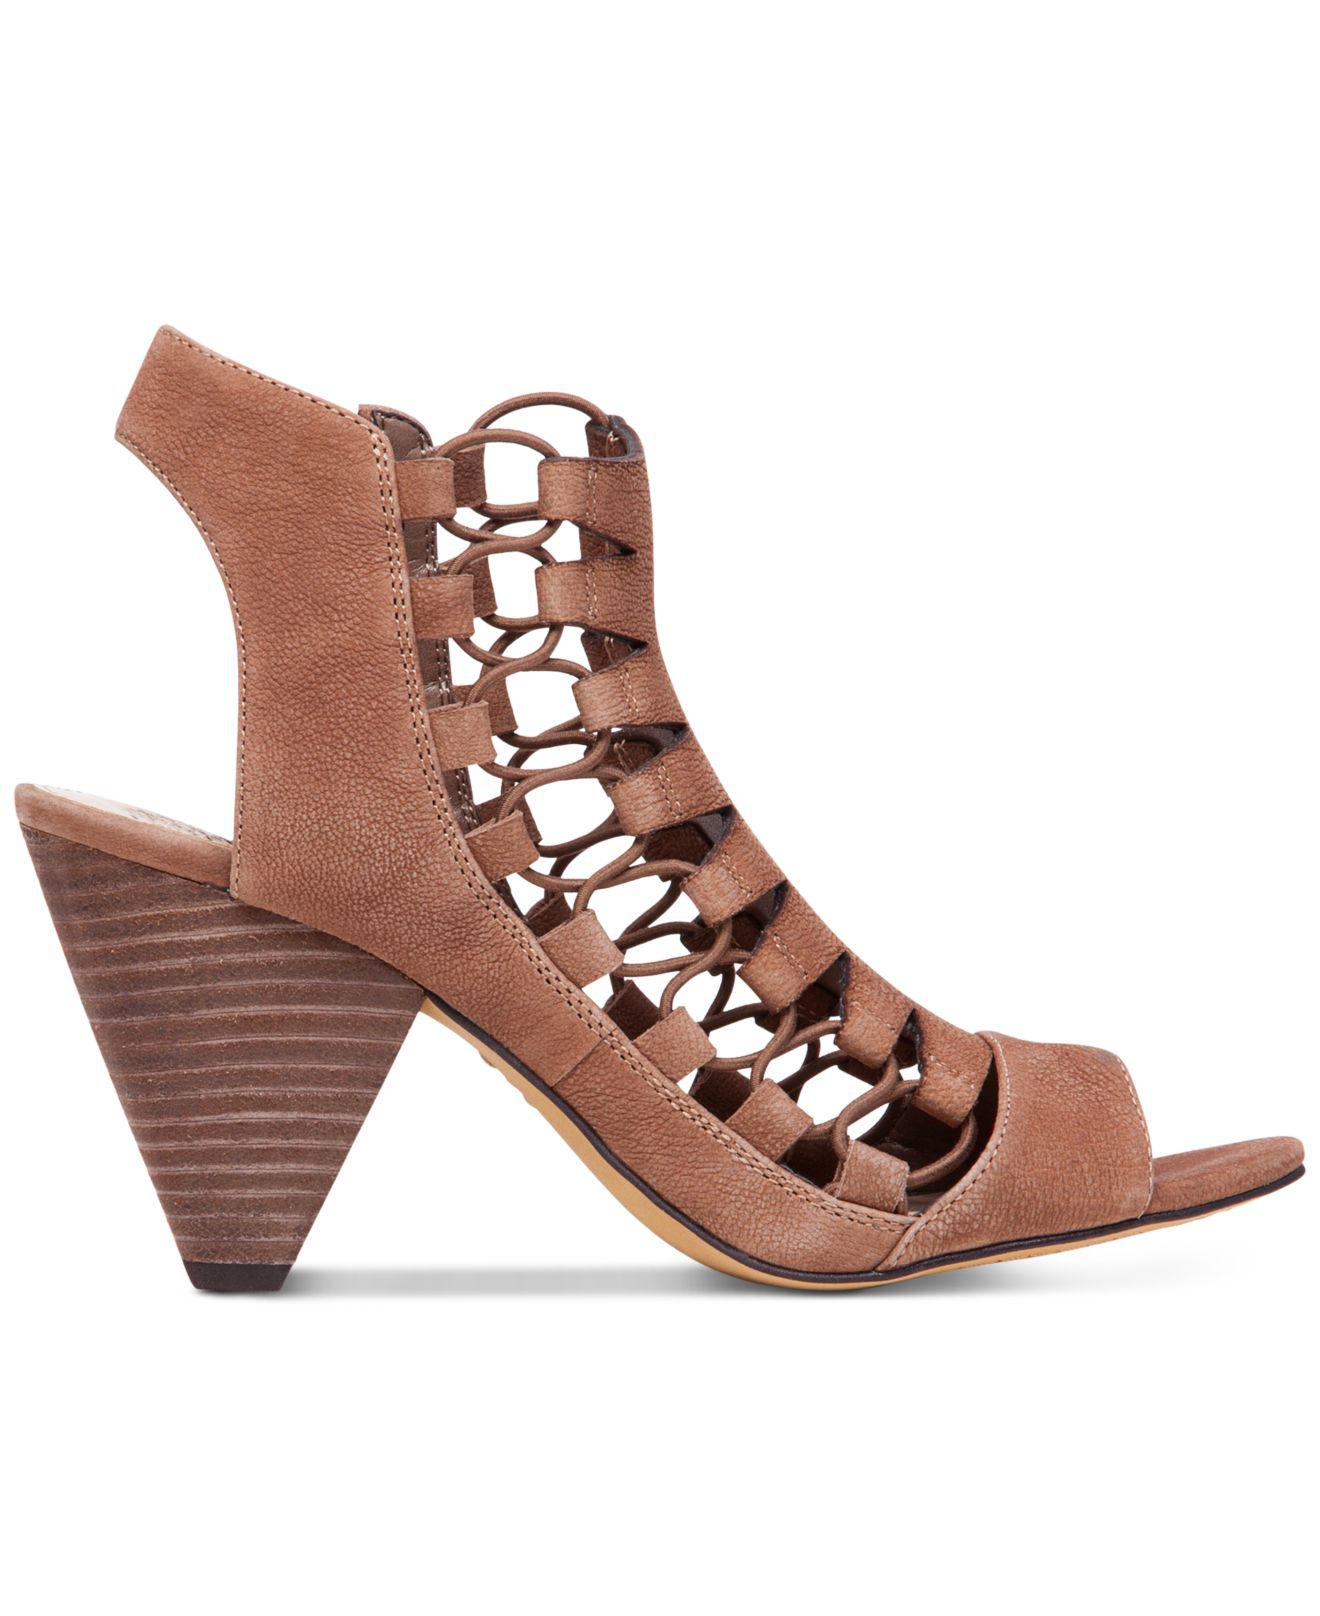 Vince Camuto Eliaz Gladiator Dress Sandals In Brown Lyst